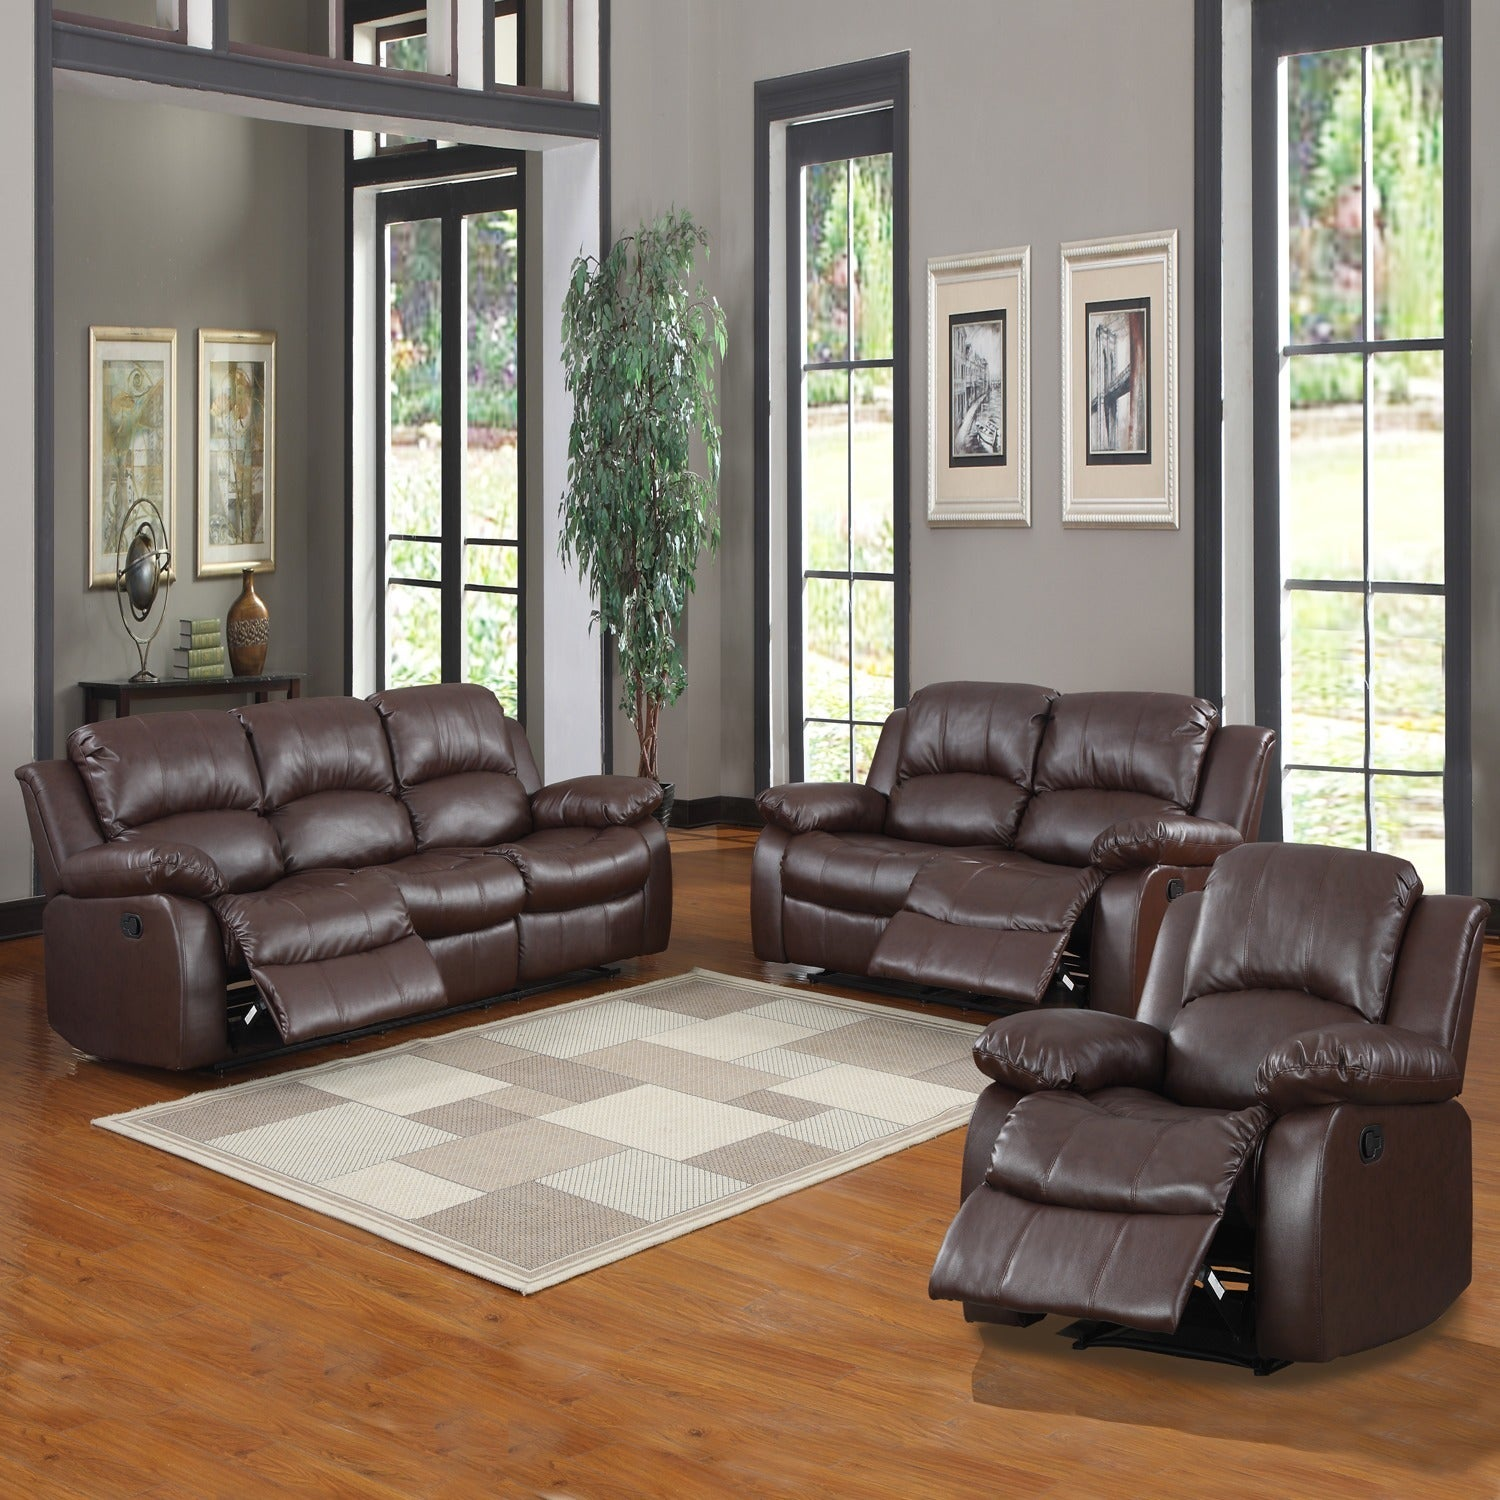 Home coleford tufted transitional reclining 3 piece living room set